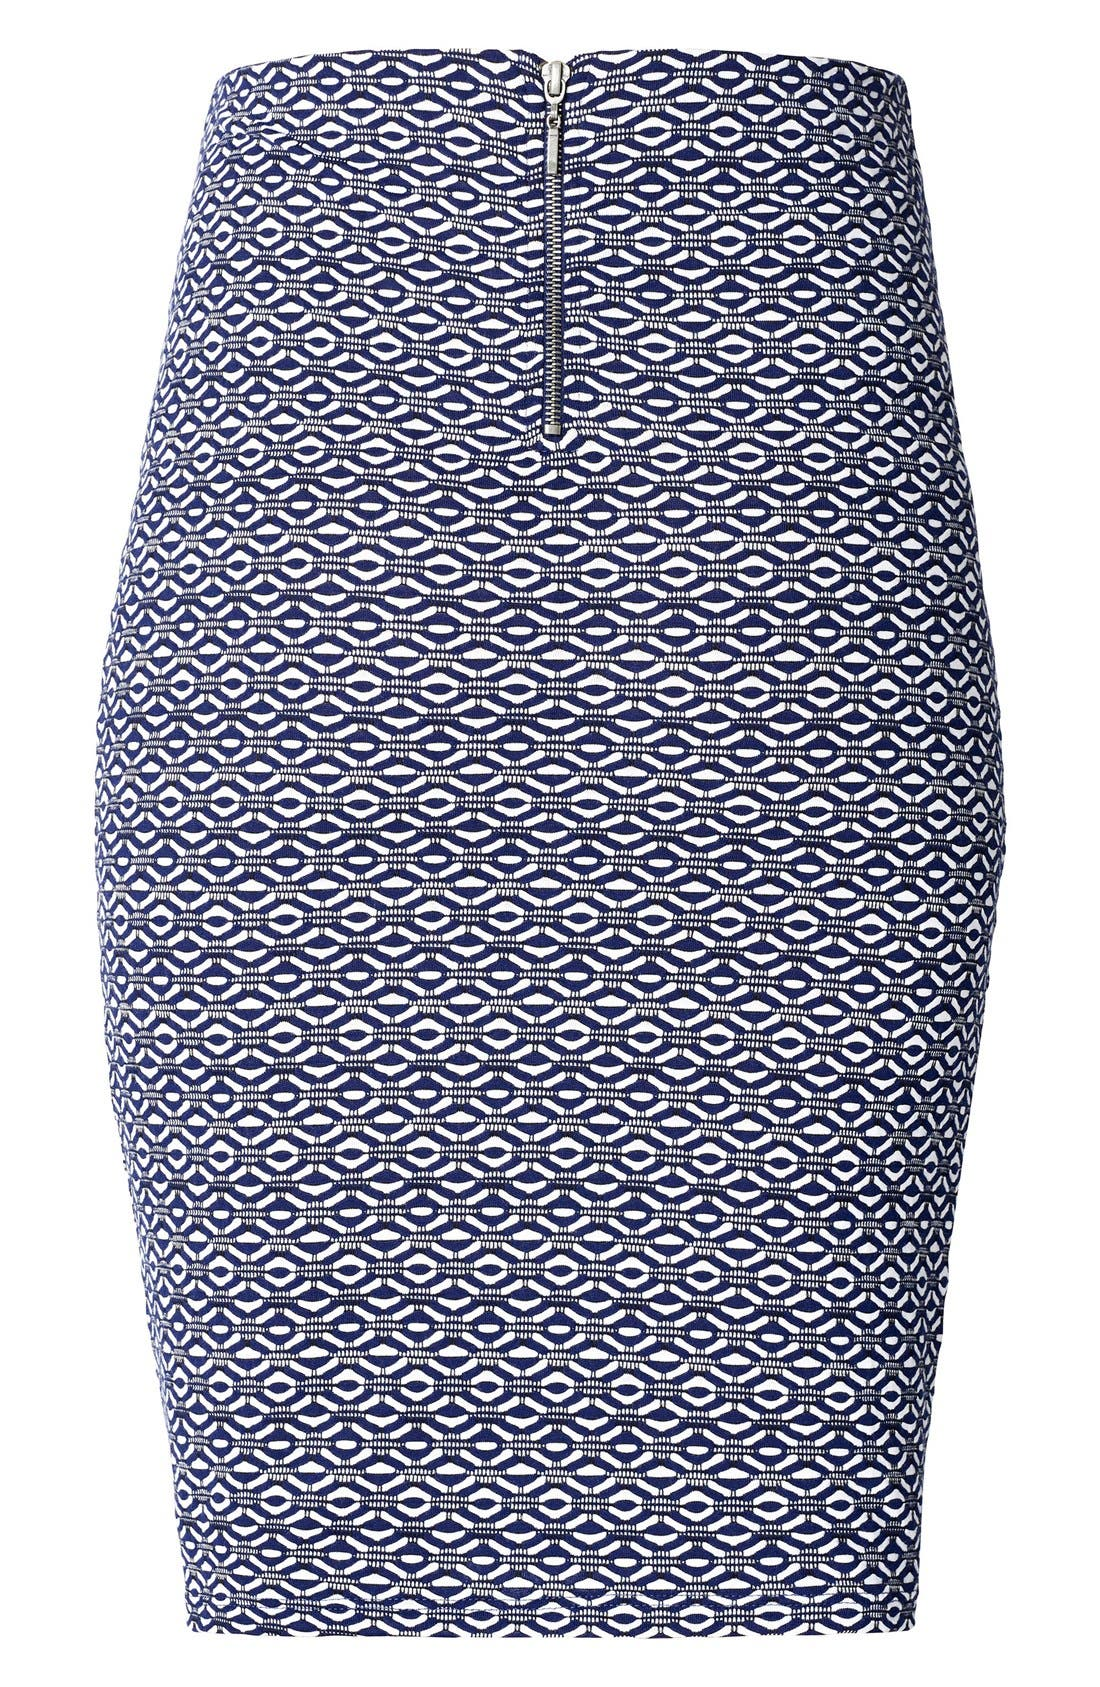 Rita Maternity Pencil Skirt,                             Alternate thumbnail 2, color,                             Medium Blue